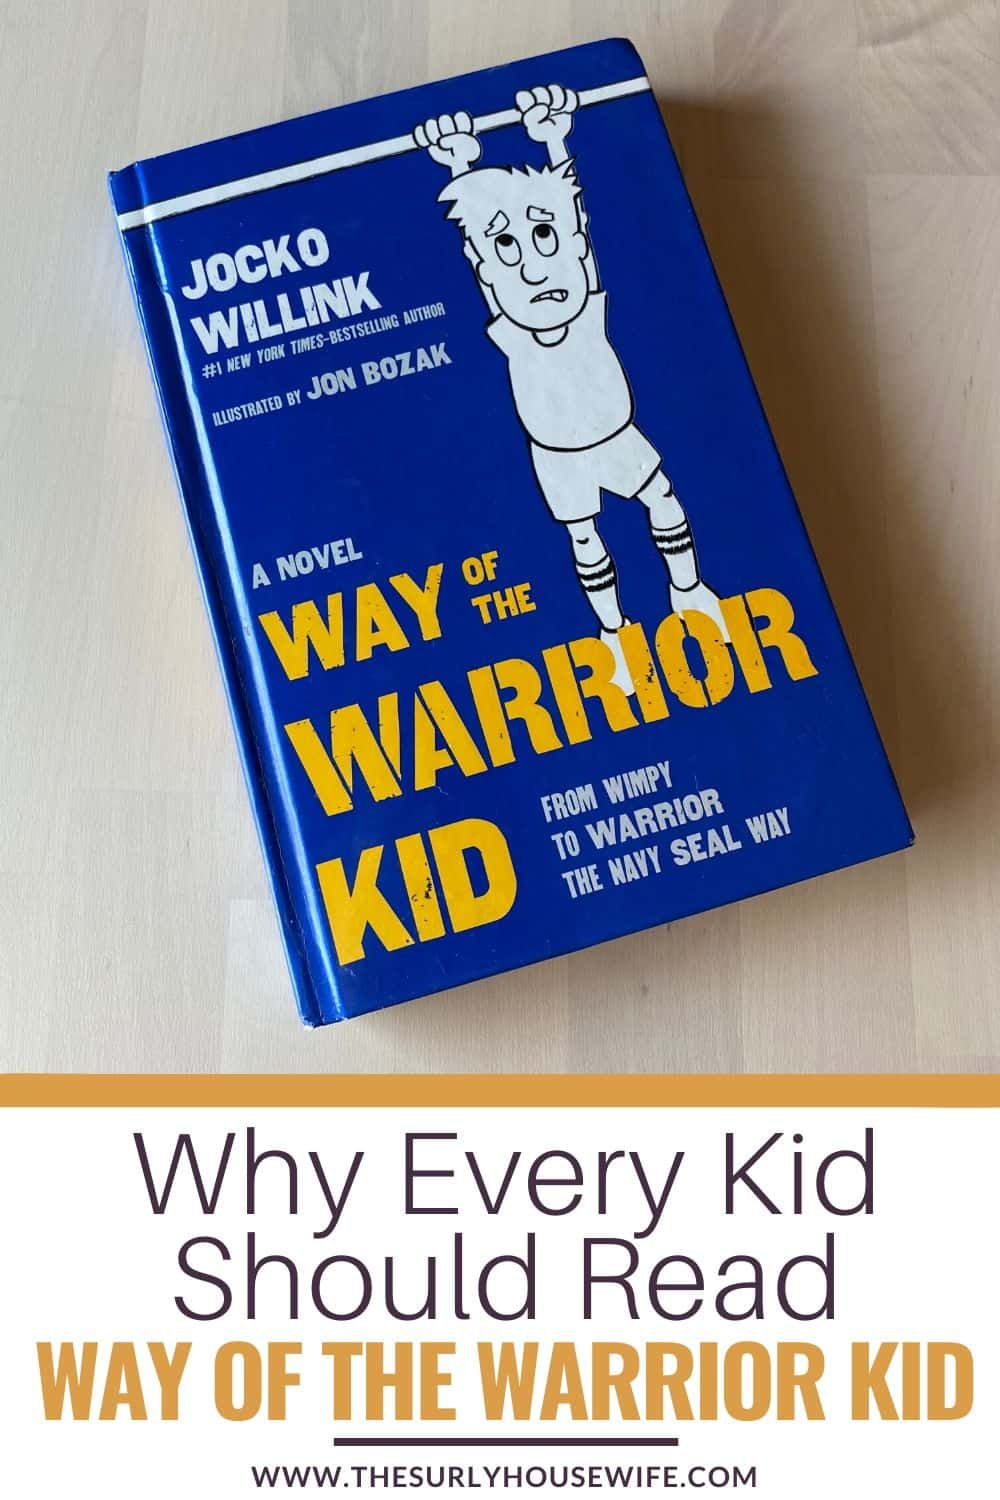 Searching for the BEST book for your kids? Look no further! Way of the Warrior Kid: From Wimpy to Warrior the Navy Seal Way is my #1 book recommendation! It really is the best book for boys AND girls and parents will love it too! Elementary kids as well as middle schoolers will gain so much from this book.